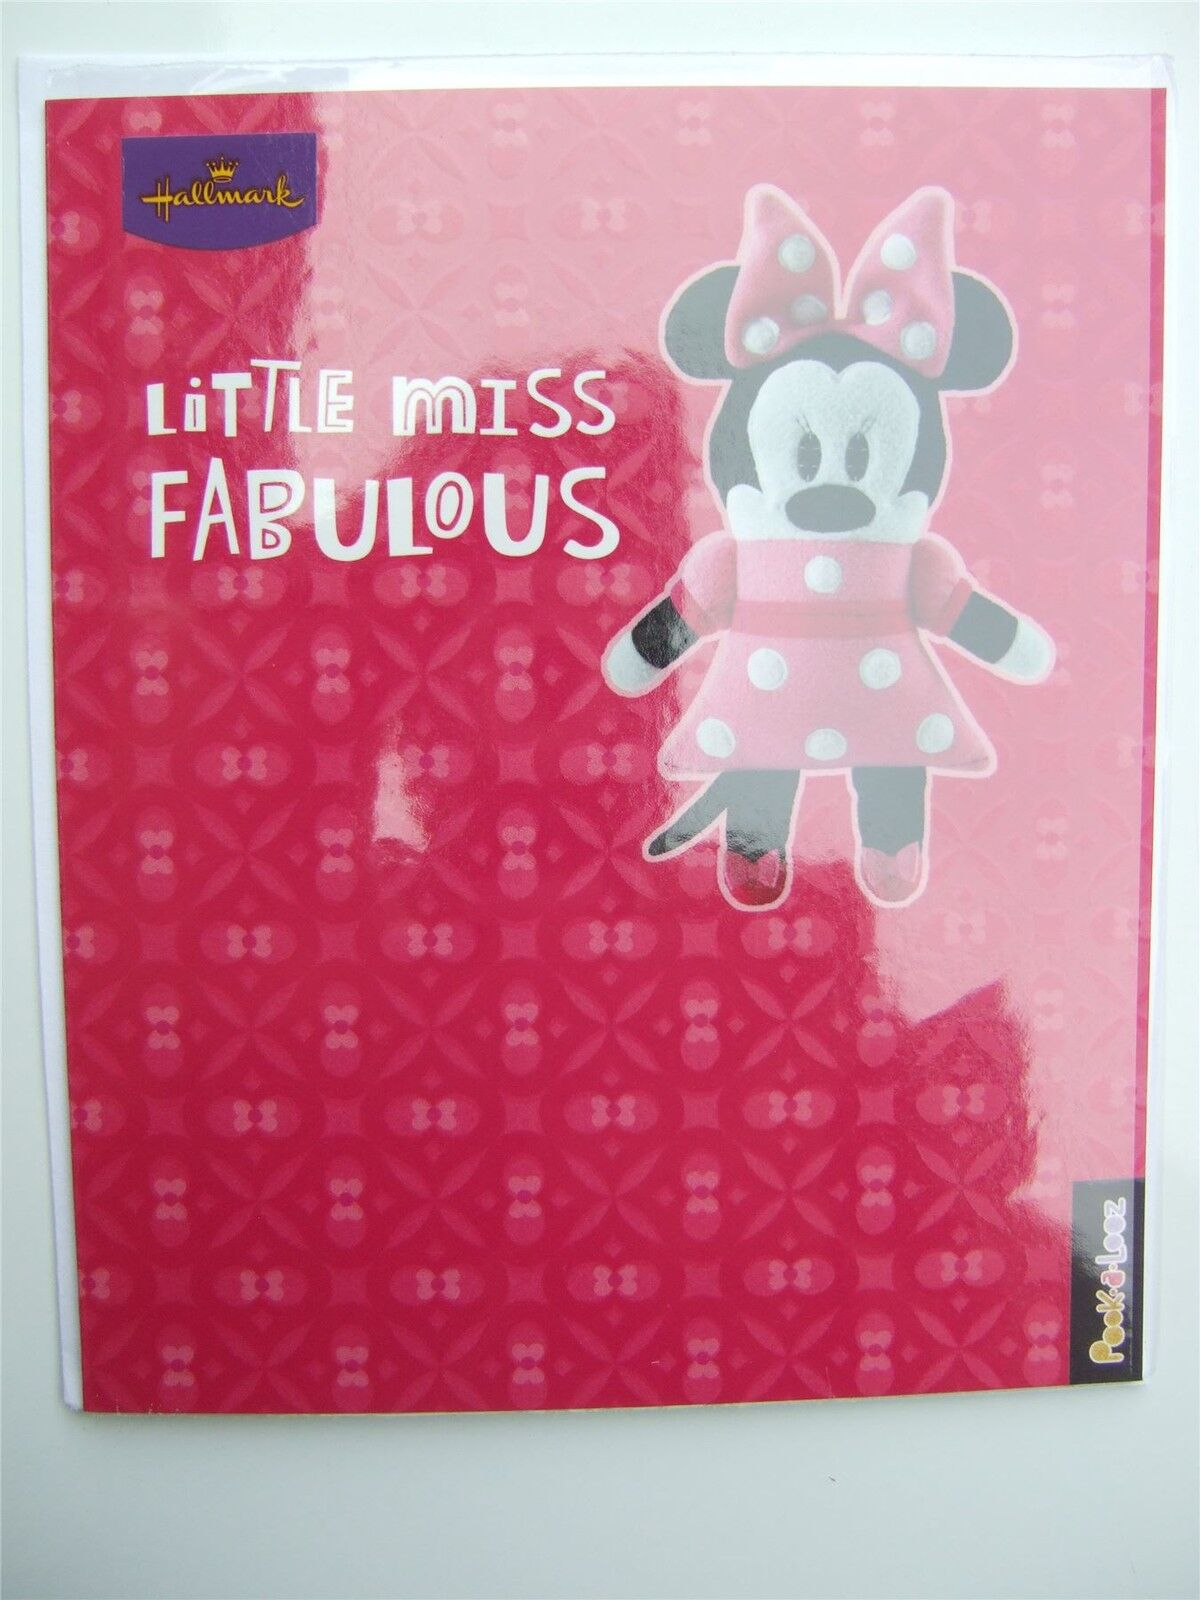 Minnie Mouse Pook-a-looz Birthday Card by Hallmark | eBay